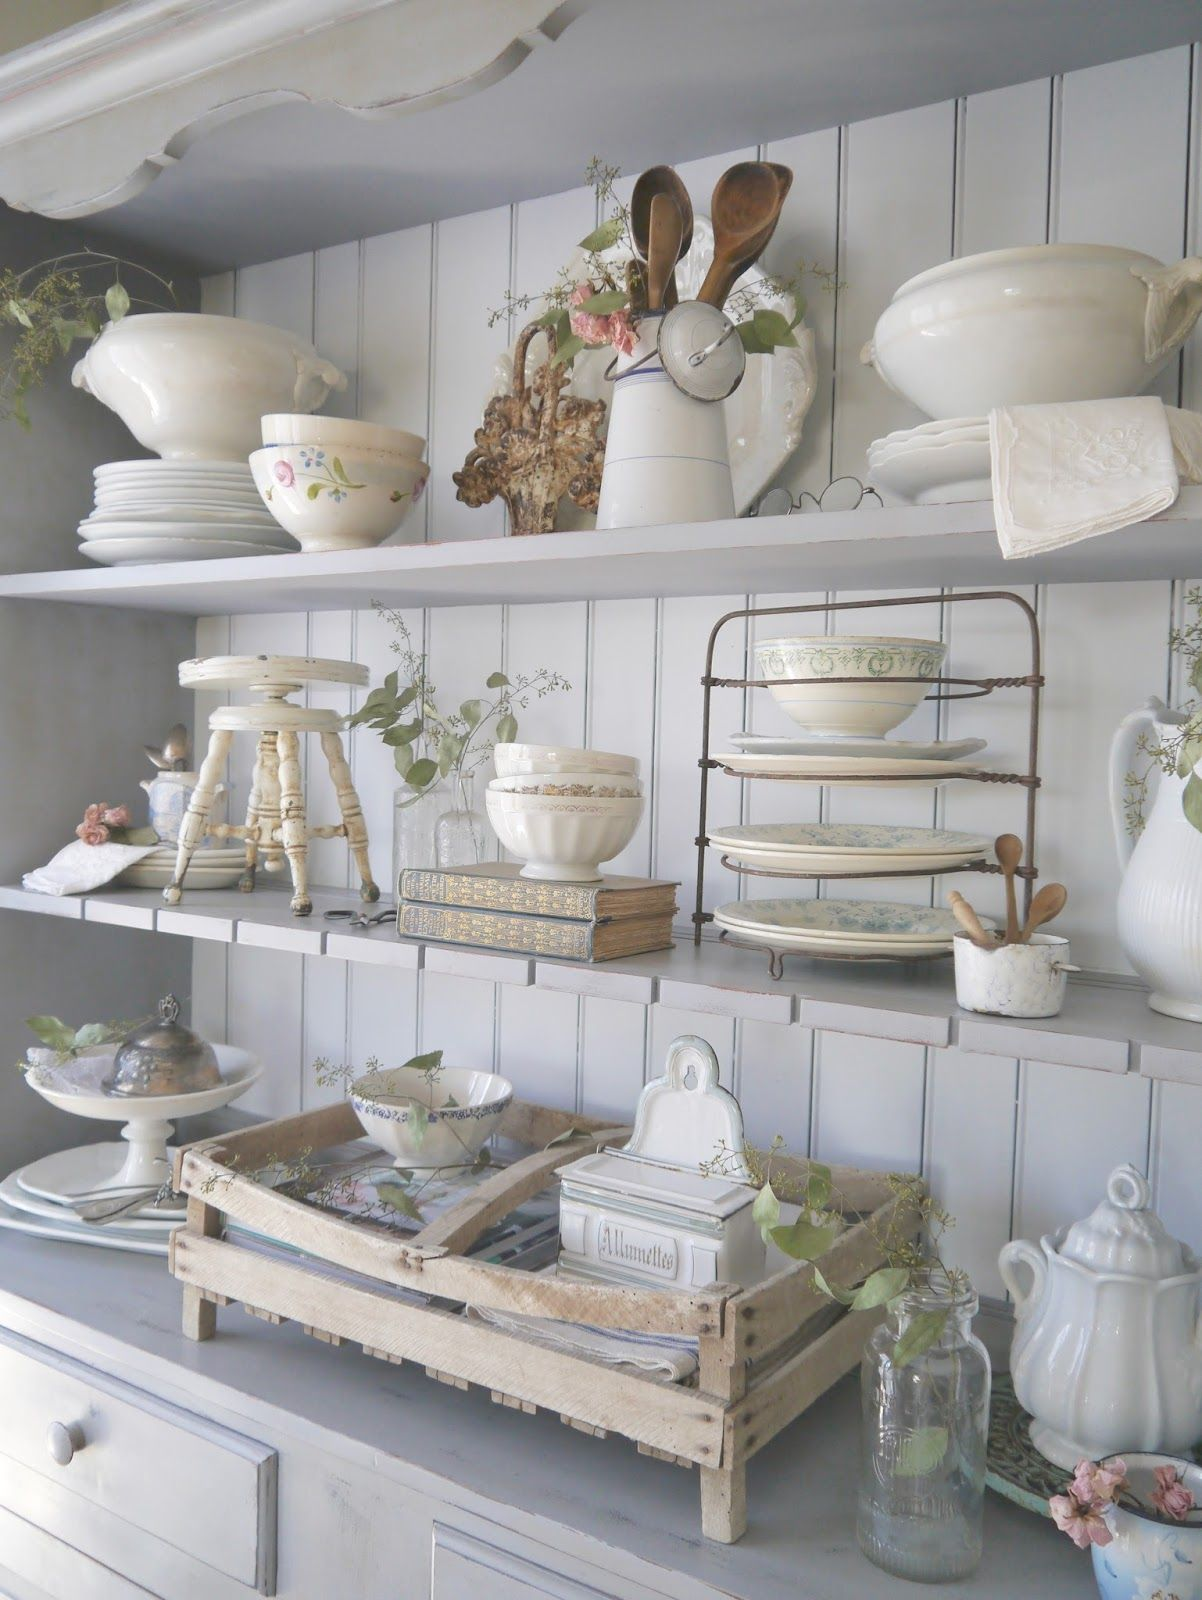 chateau chic beautiful home tour farm s kitchen shabby chic rh pinterest com